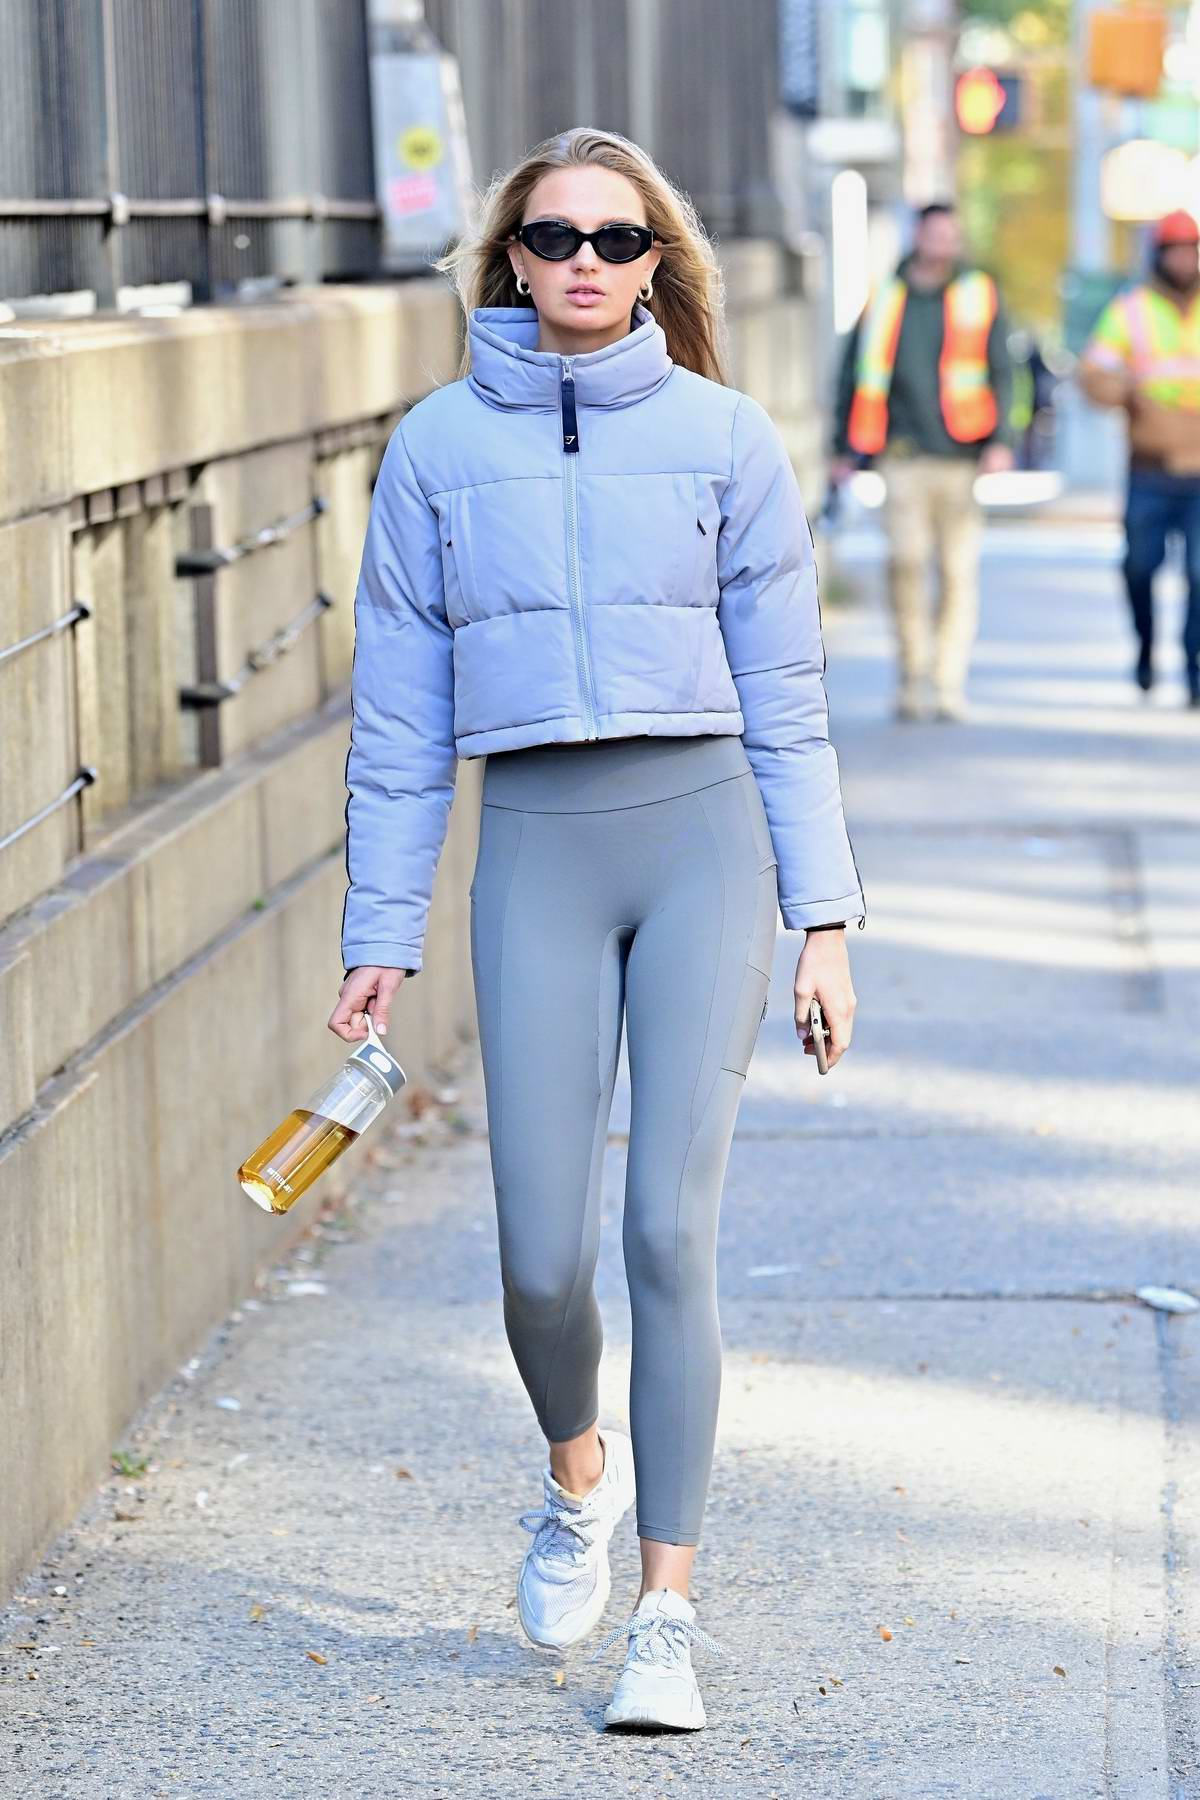 Romee Strijd shows off her toned legs in a pair of grey leggings as she hits the gym in New York City